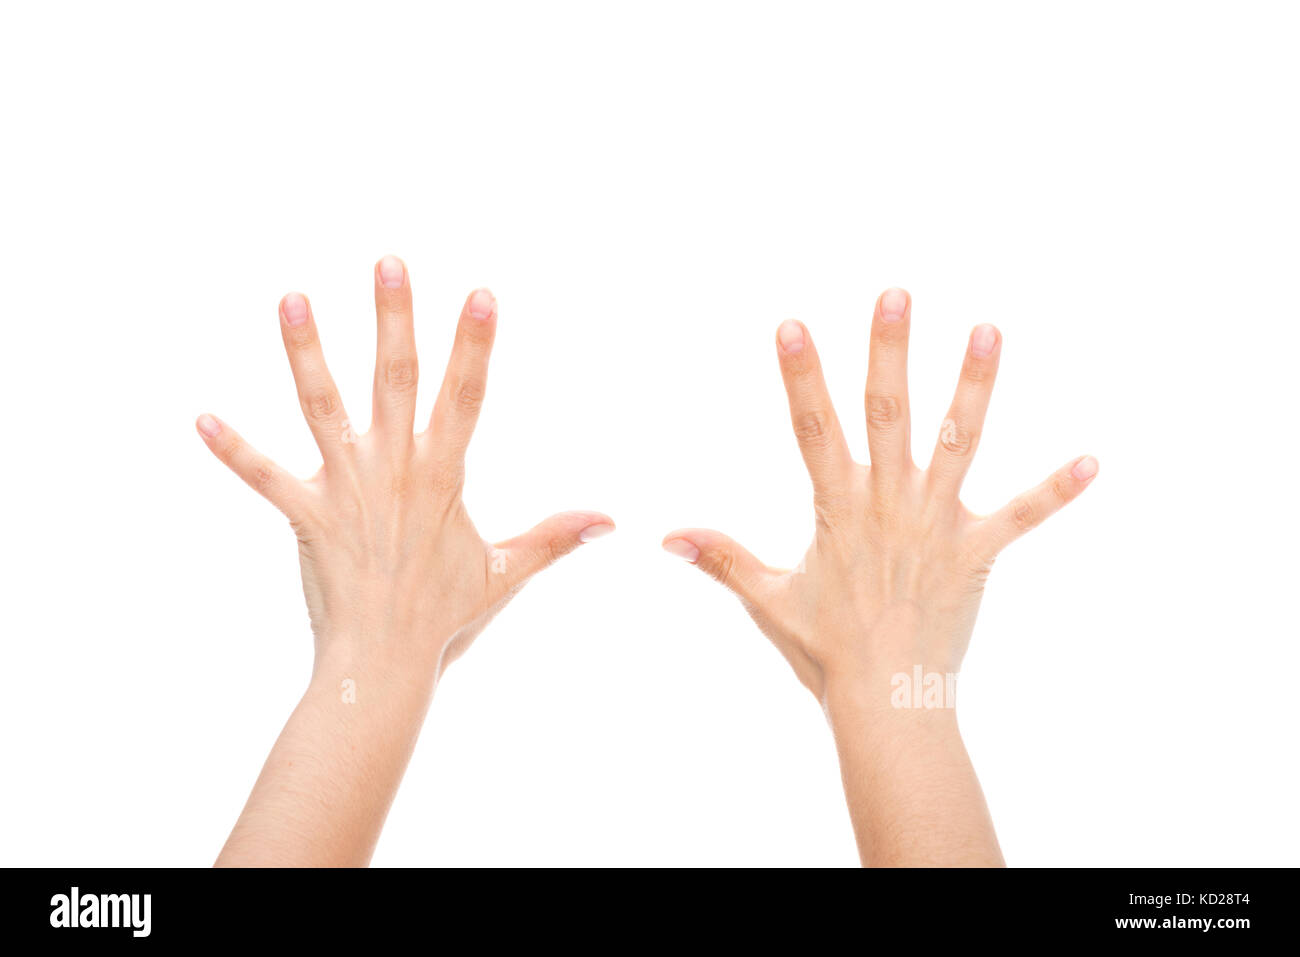 hands - Stock Image